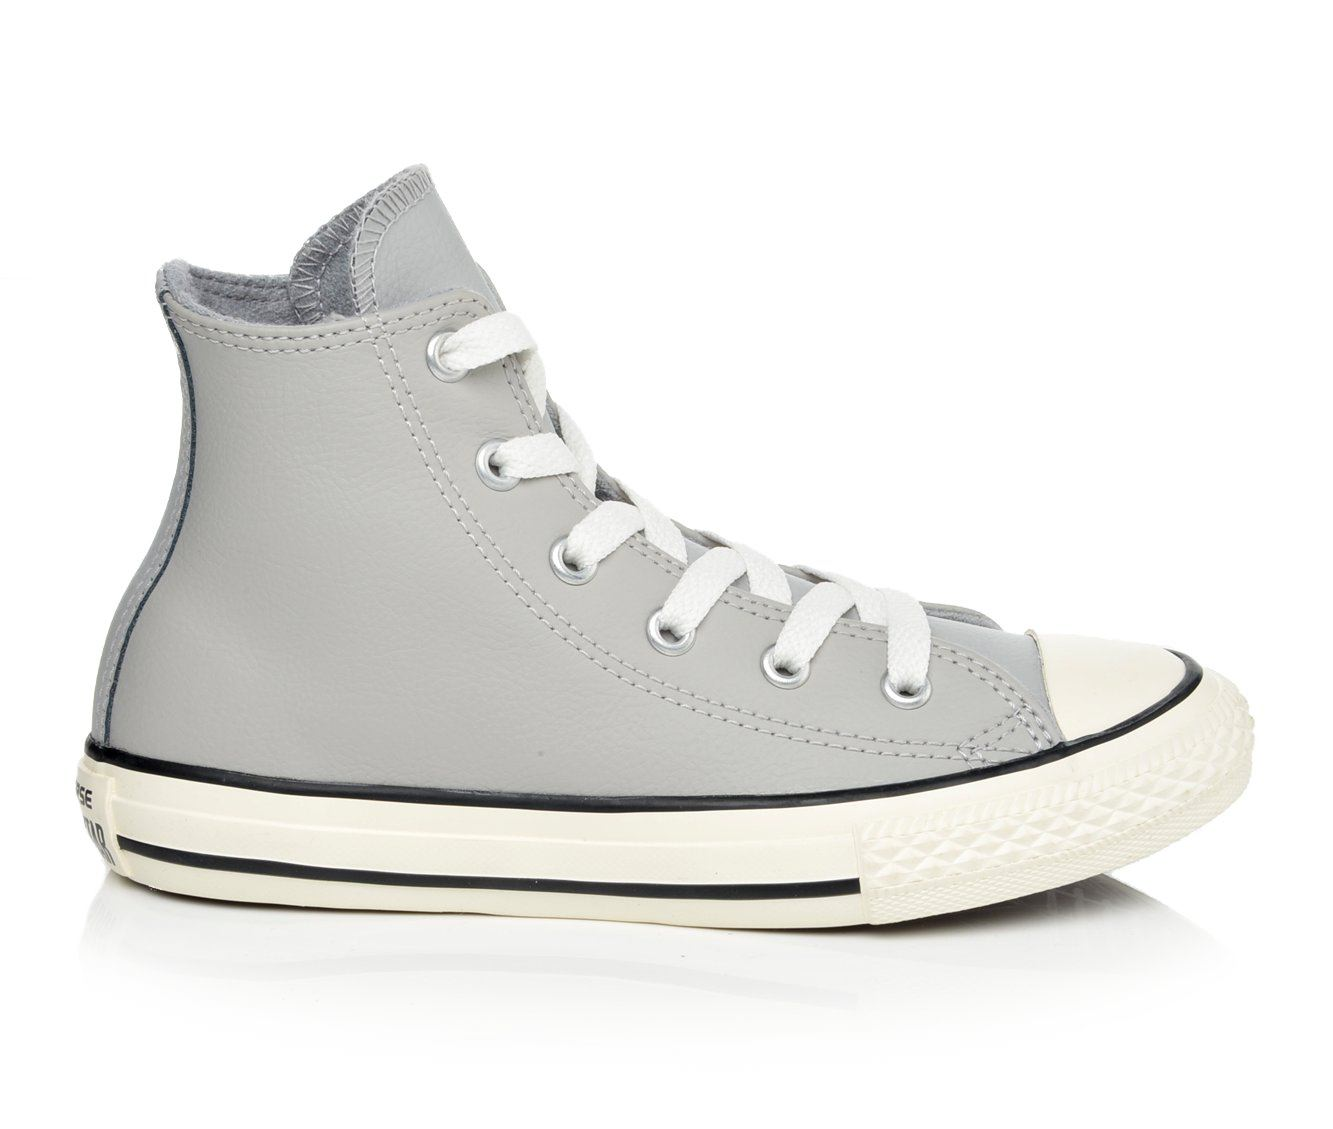 Girls' Converse Chuck Taylor All Star Hi Leather Sneakers (Grey)